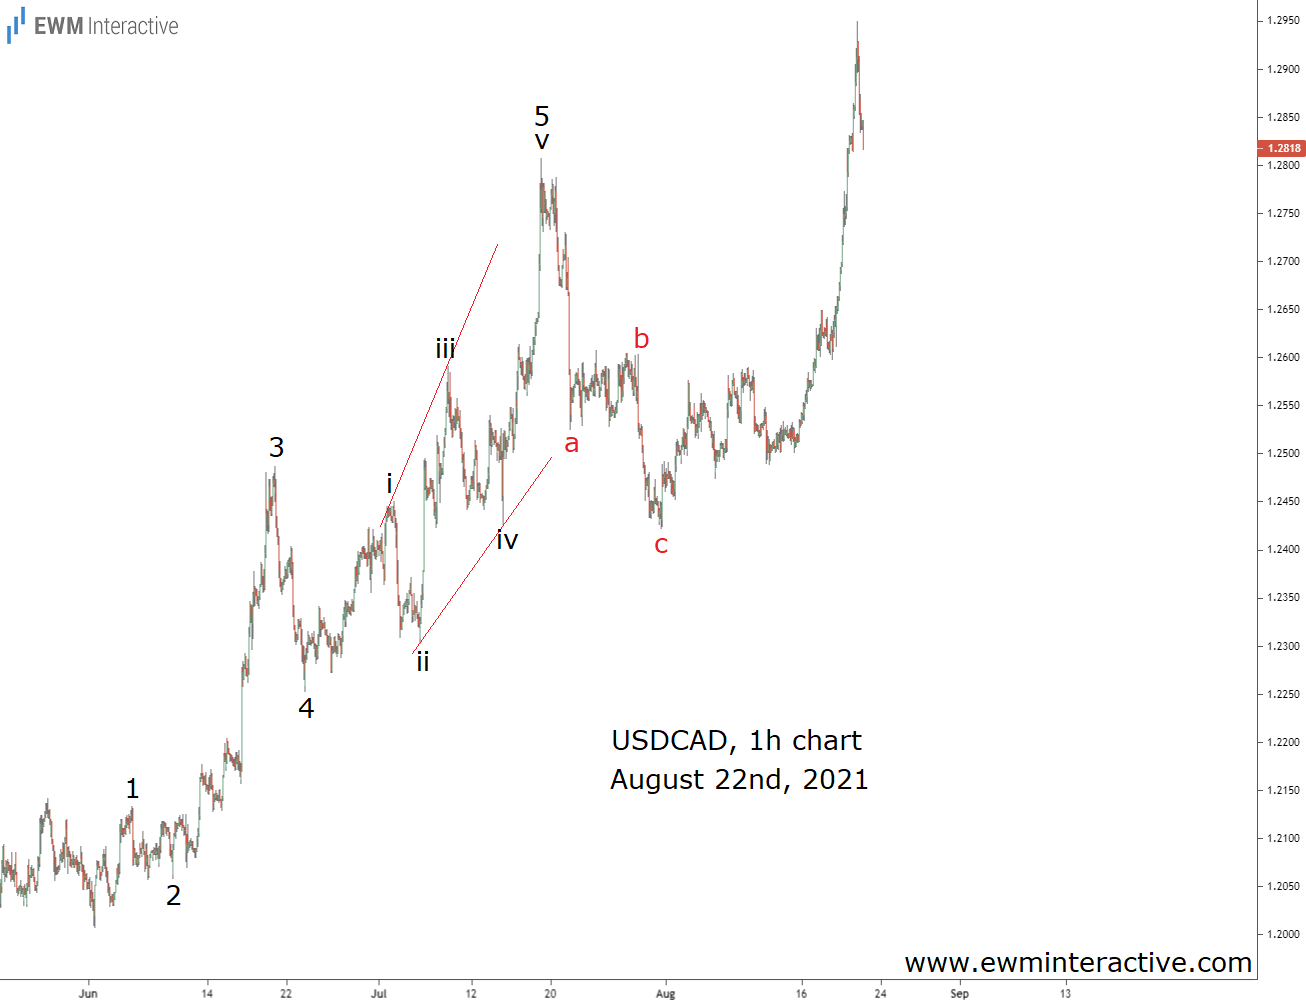 USDCAD Climbs to New High